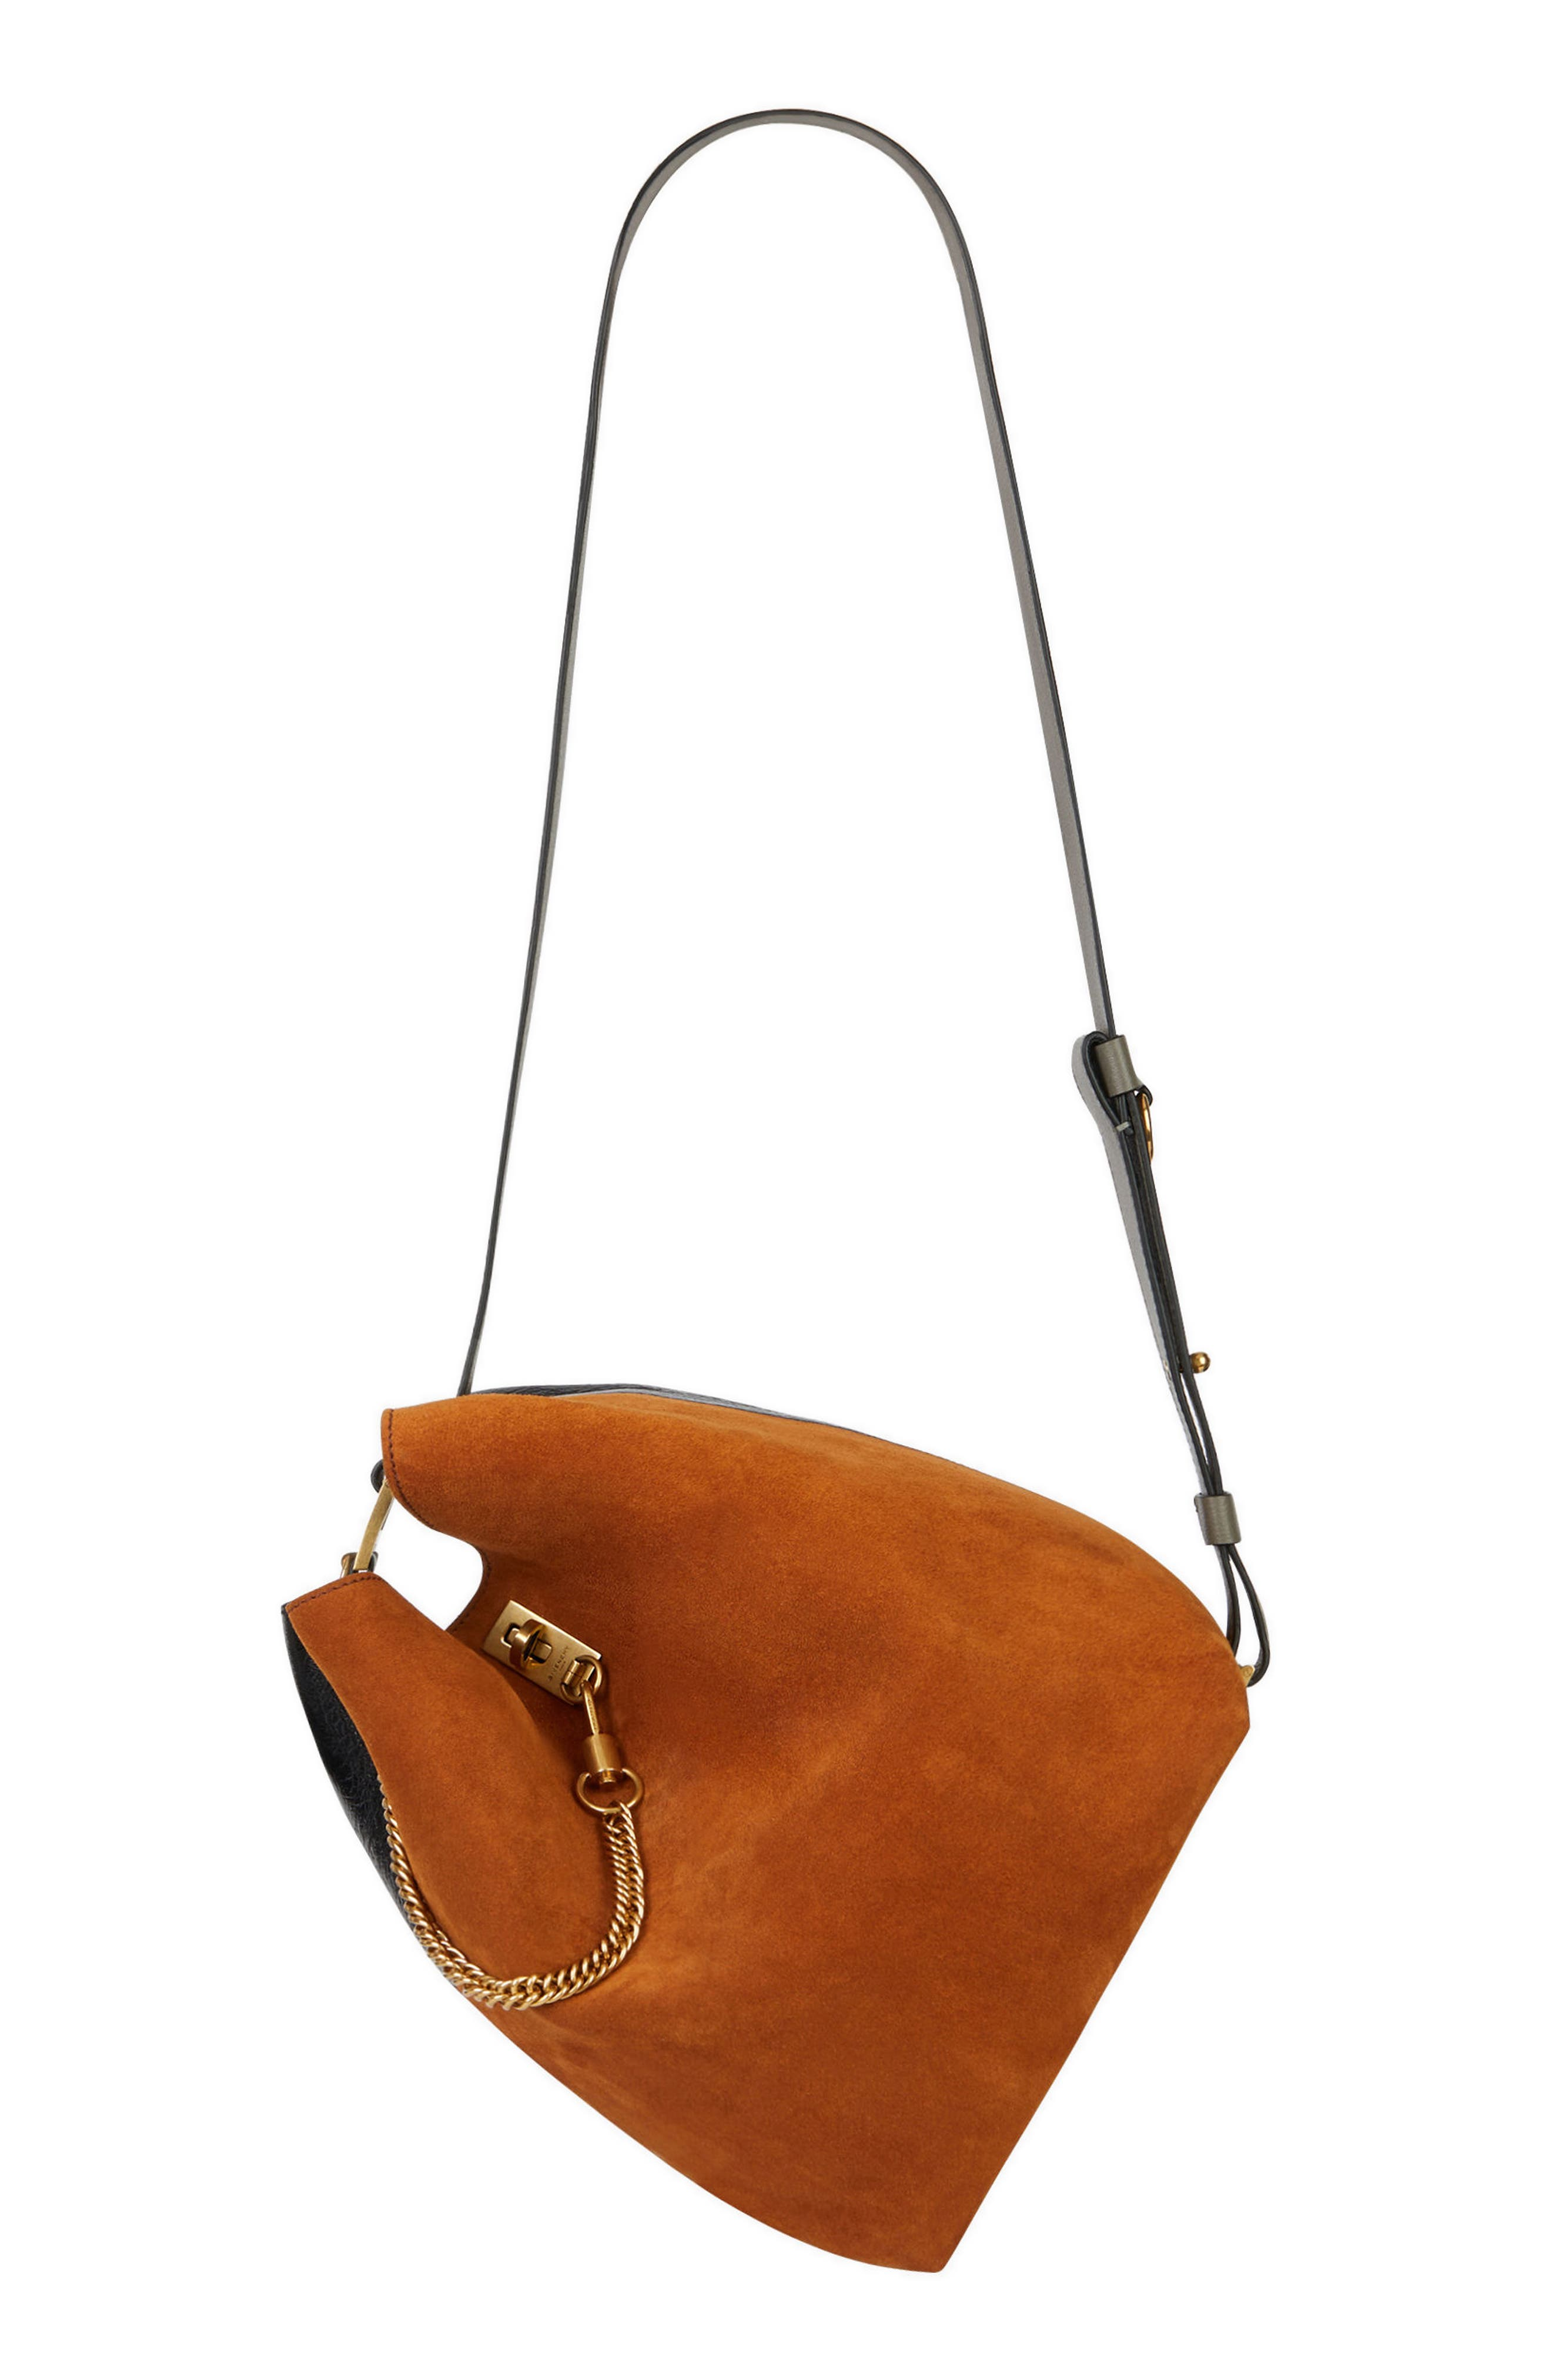 Medium GV Lambskin Bucket Bag,                             Alternate thumbnail 8, color,                             BLACK/ CHESTNUT